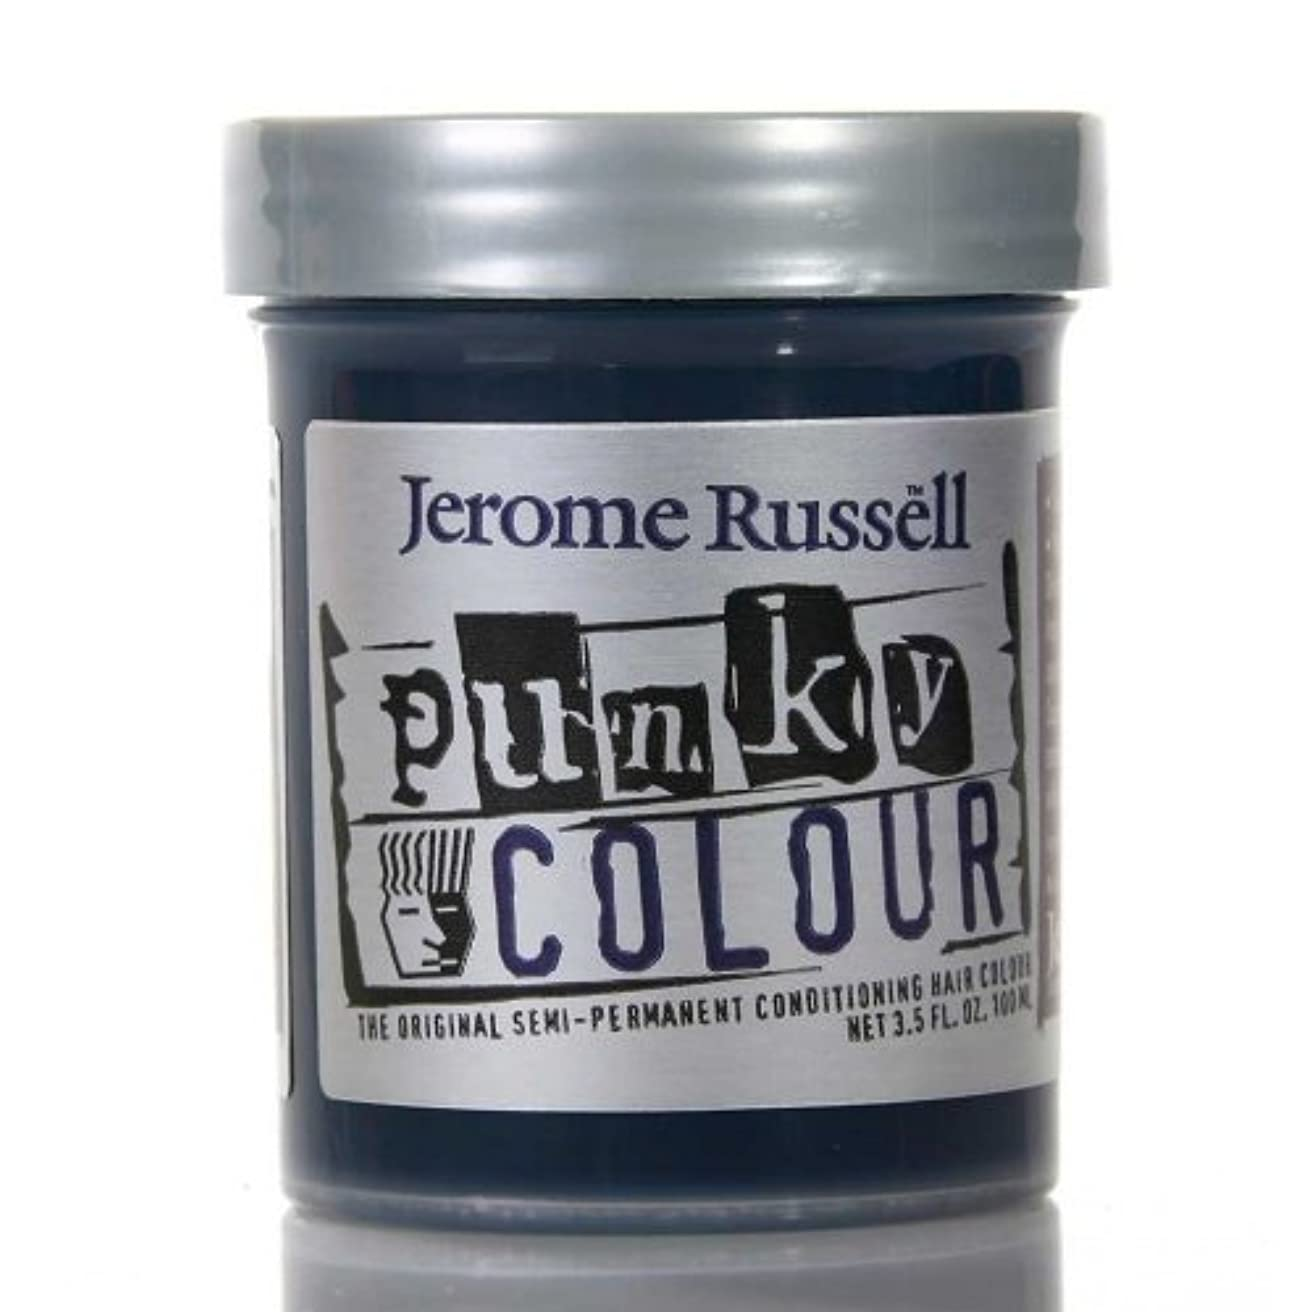 JEROME RUSSELL Punky Color Semi-Permanent Conditioning Hair Color - Midnight Blue (並行輸入品)